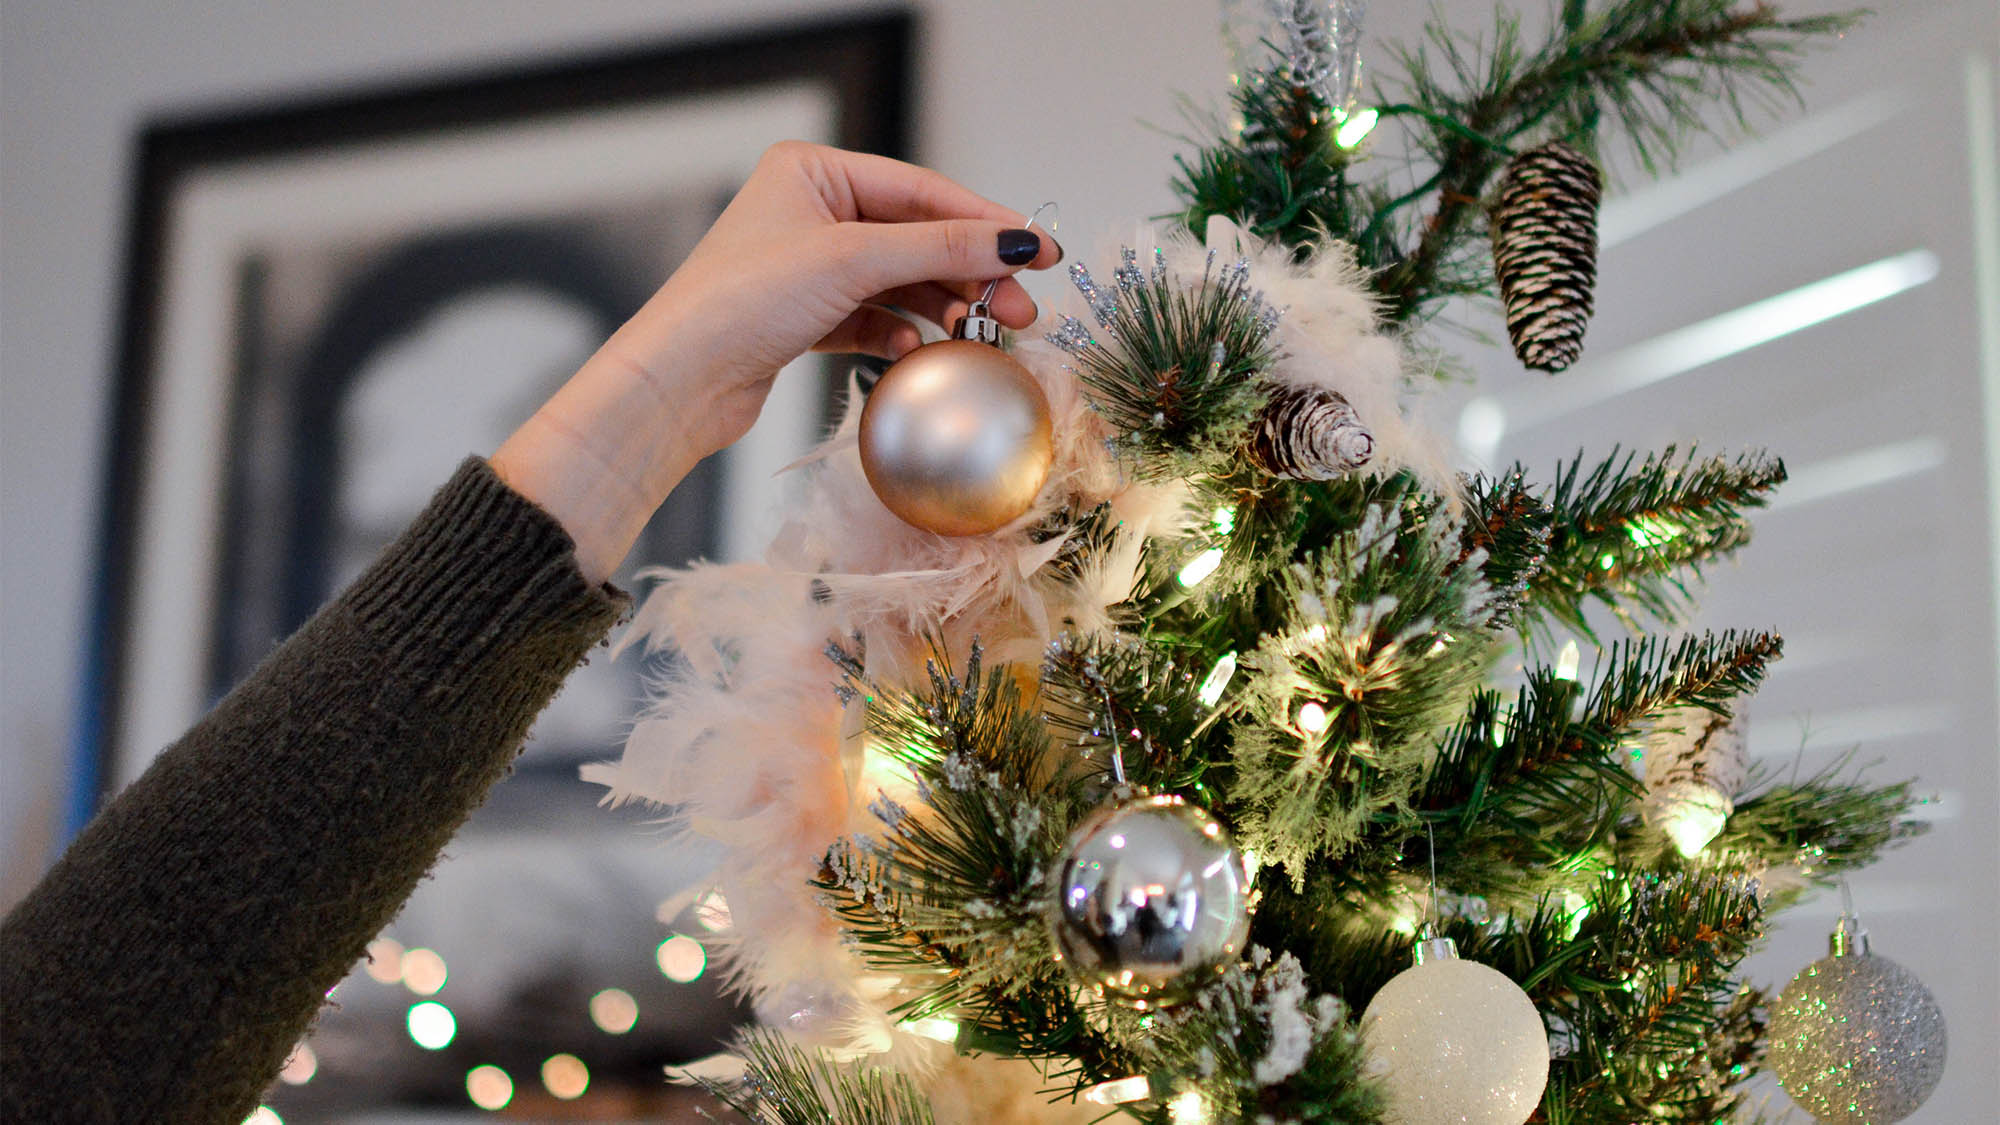 White woman's hand putting glass ornament on decorated Christmas tree